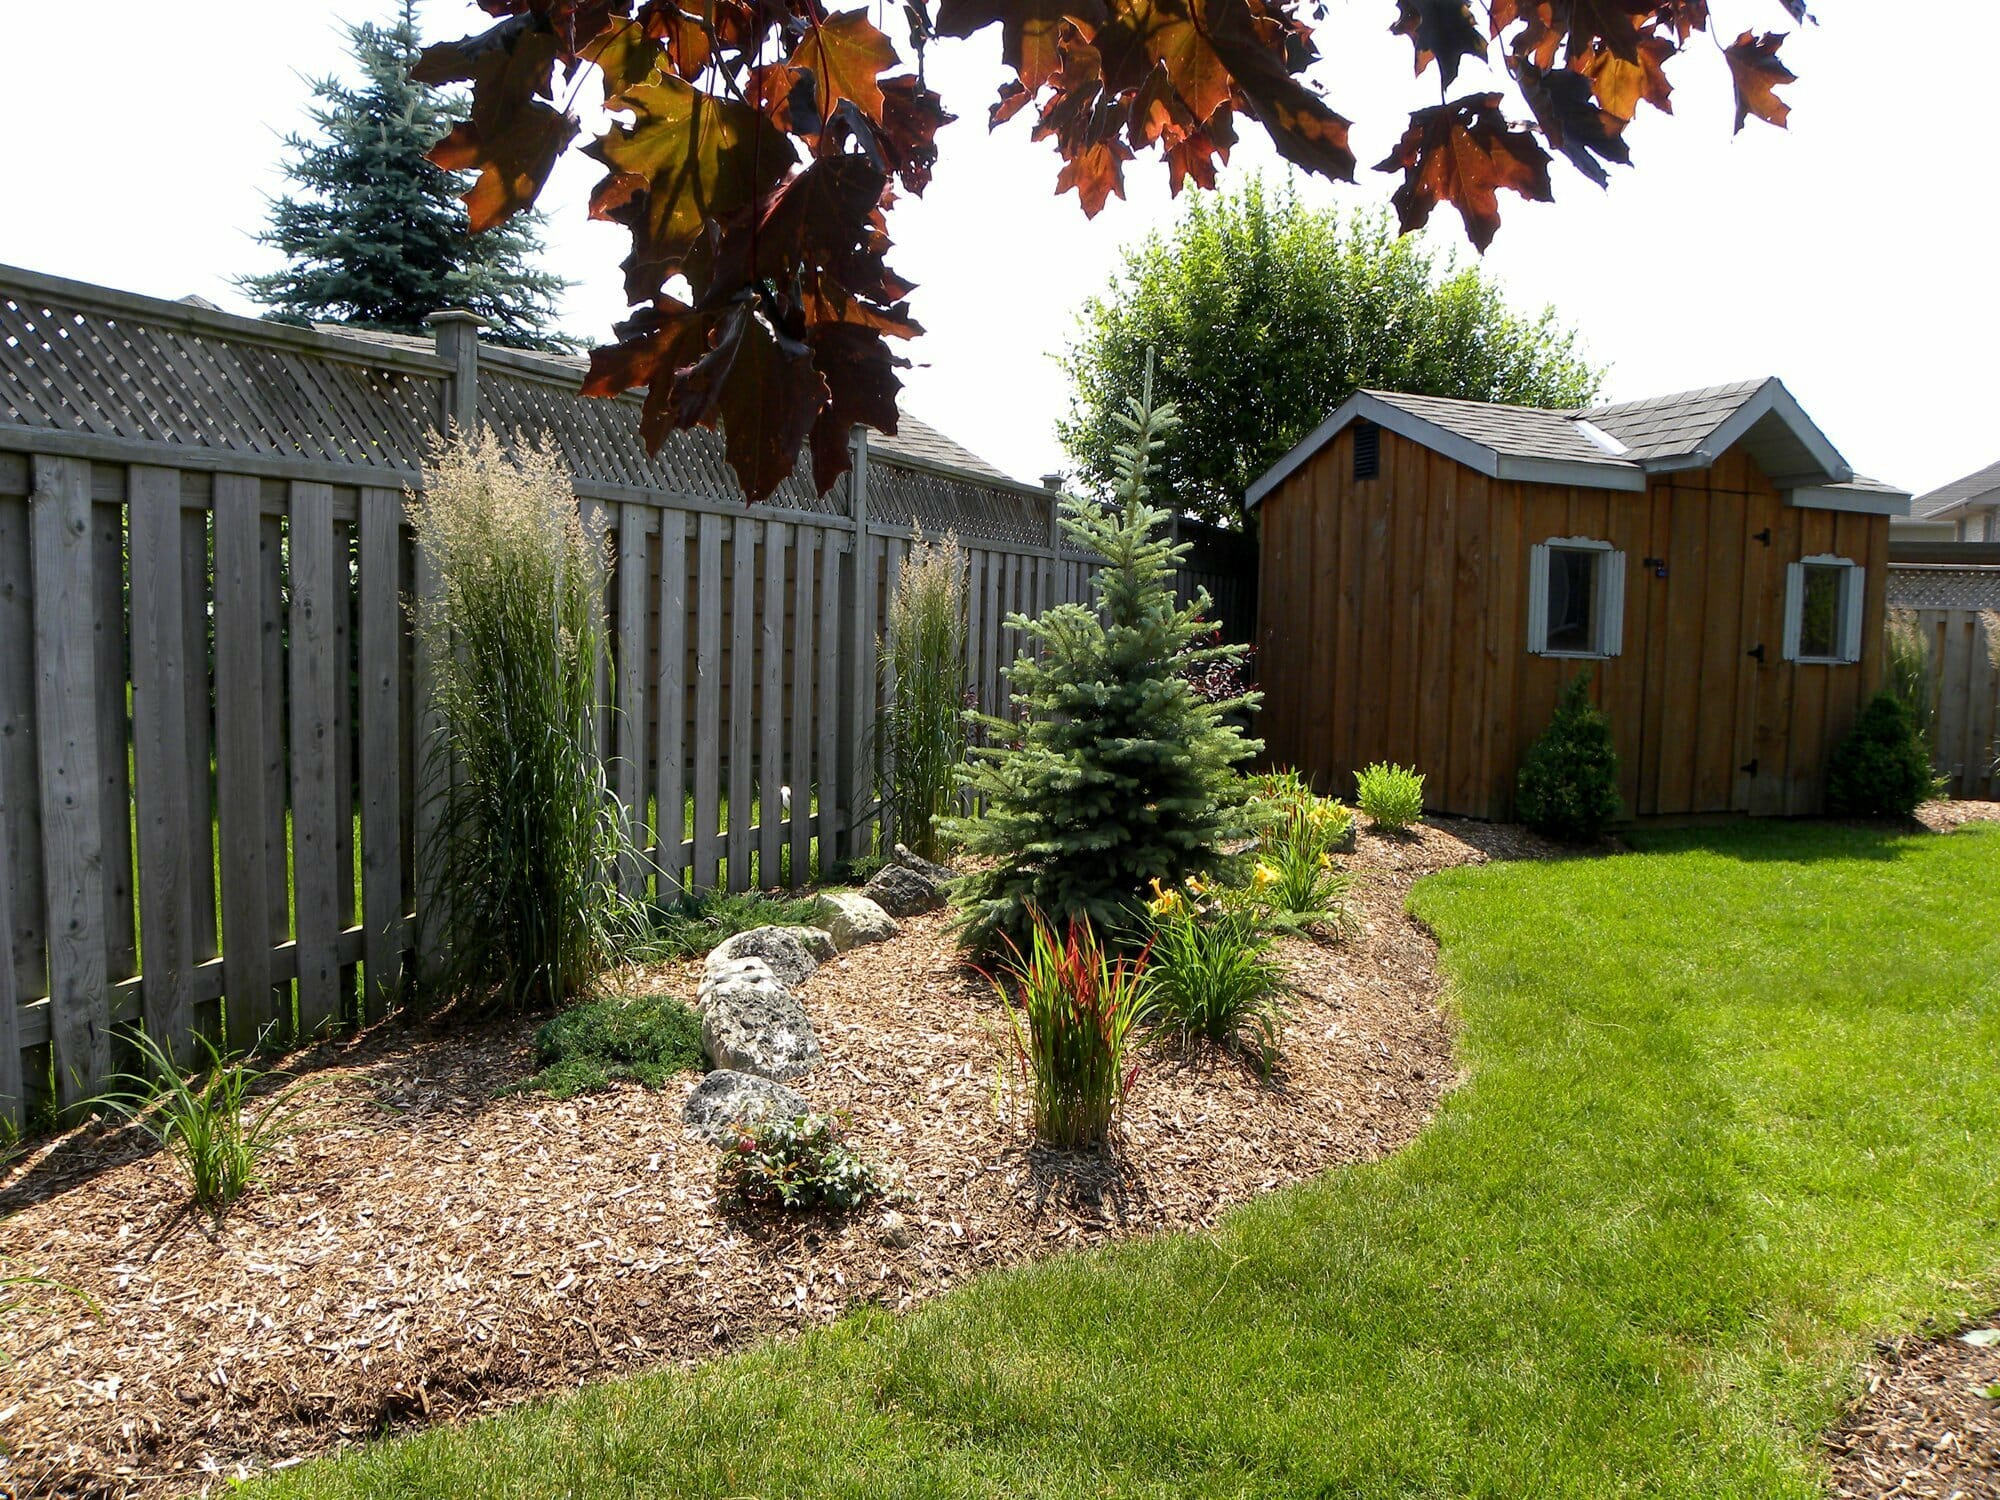 Backyard Plantings - London, Ontario Landscaping & Custom Landscape Design